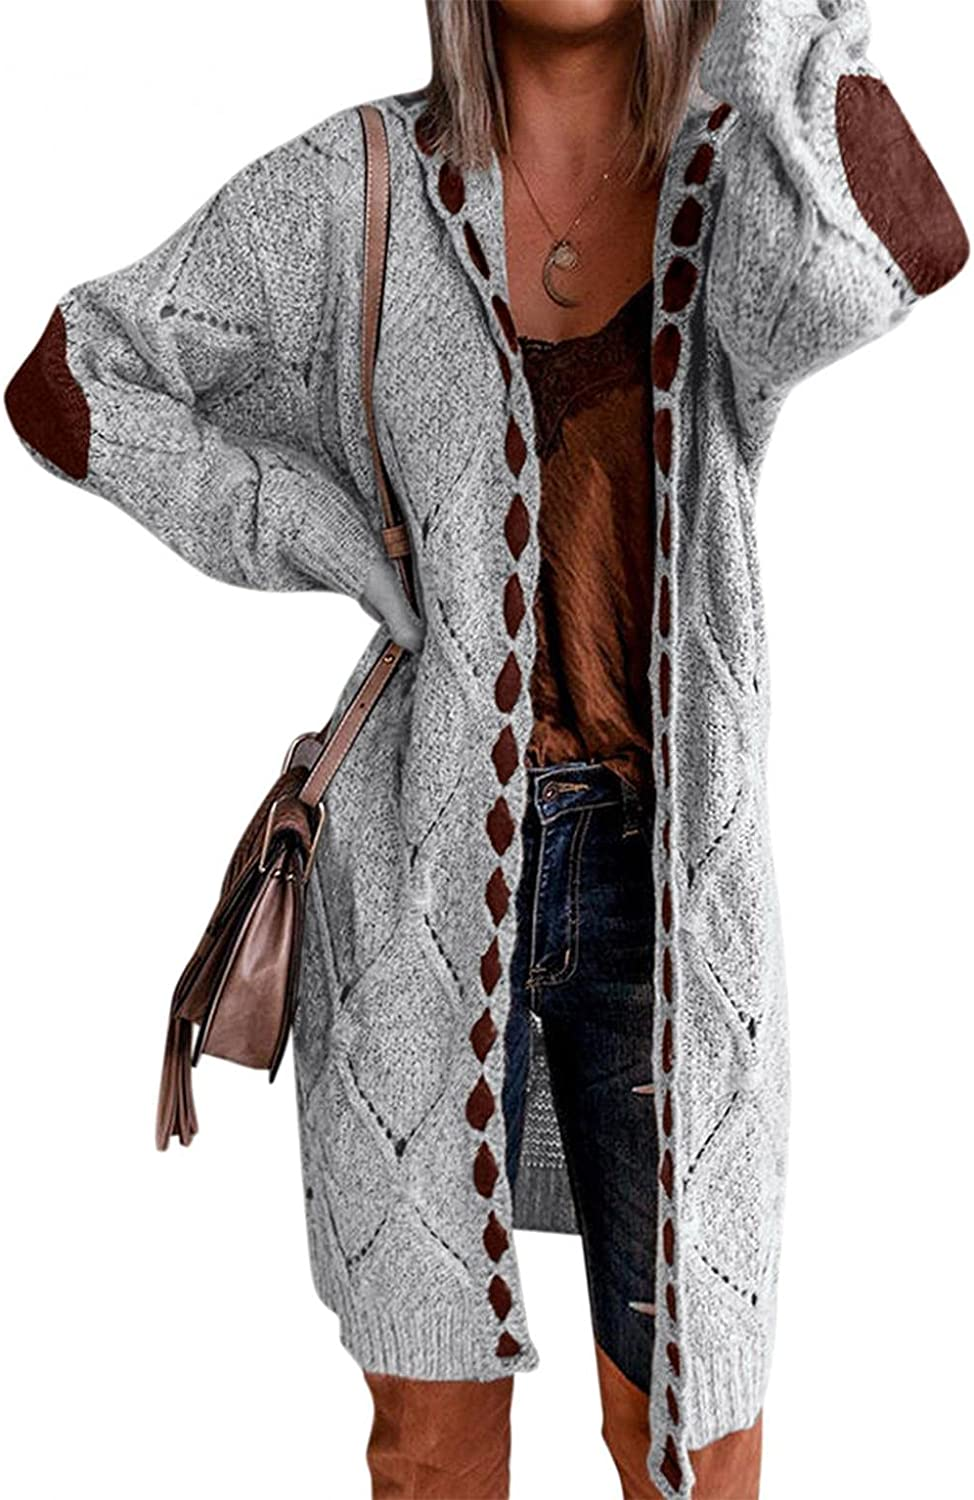 Misaky Womens Oversized Cardigan Sweaters Batwing Long Sleeve Open Front Knit Sweaters Coat Pockets